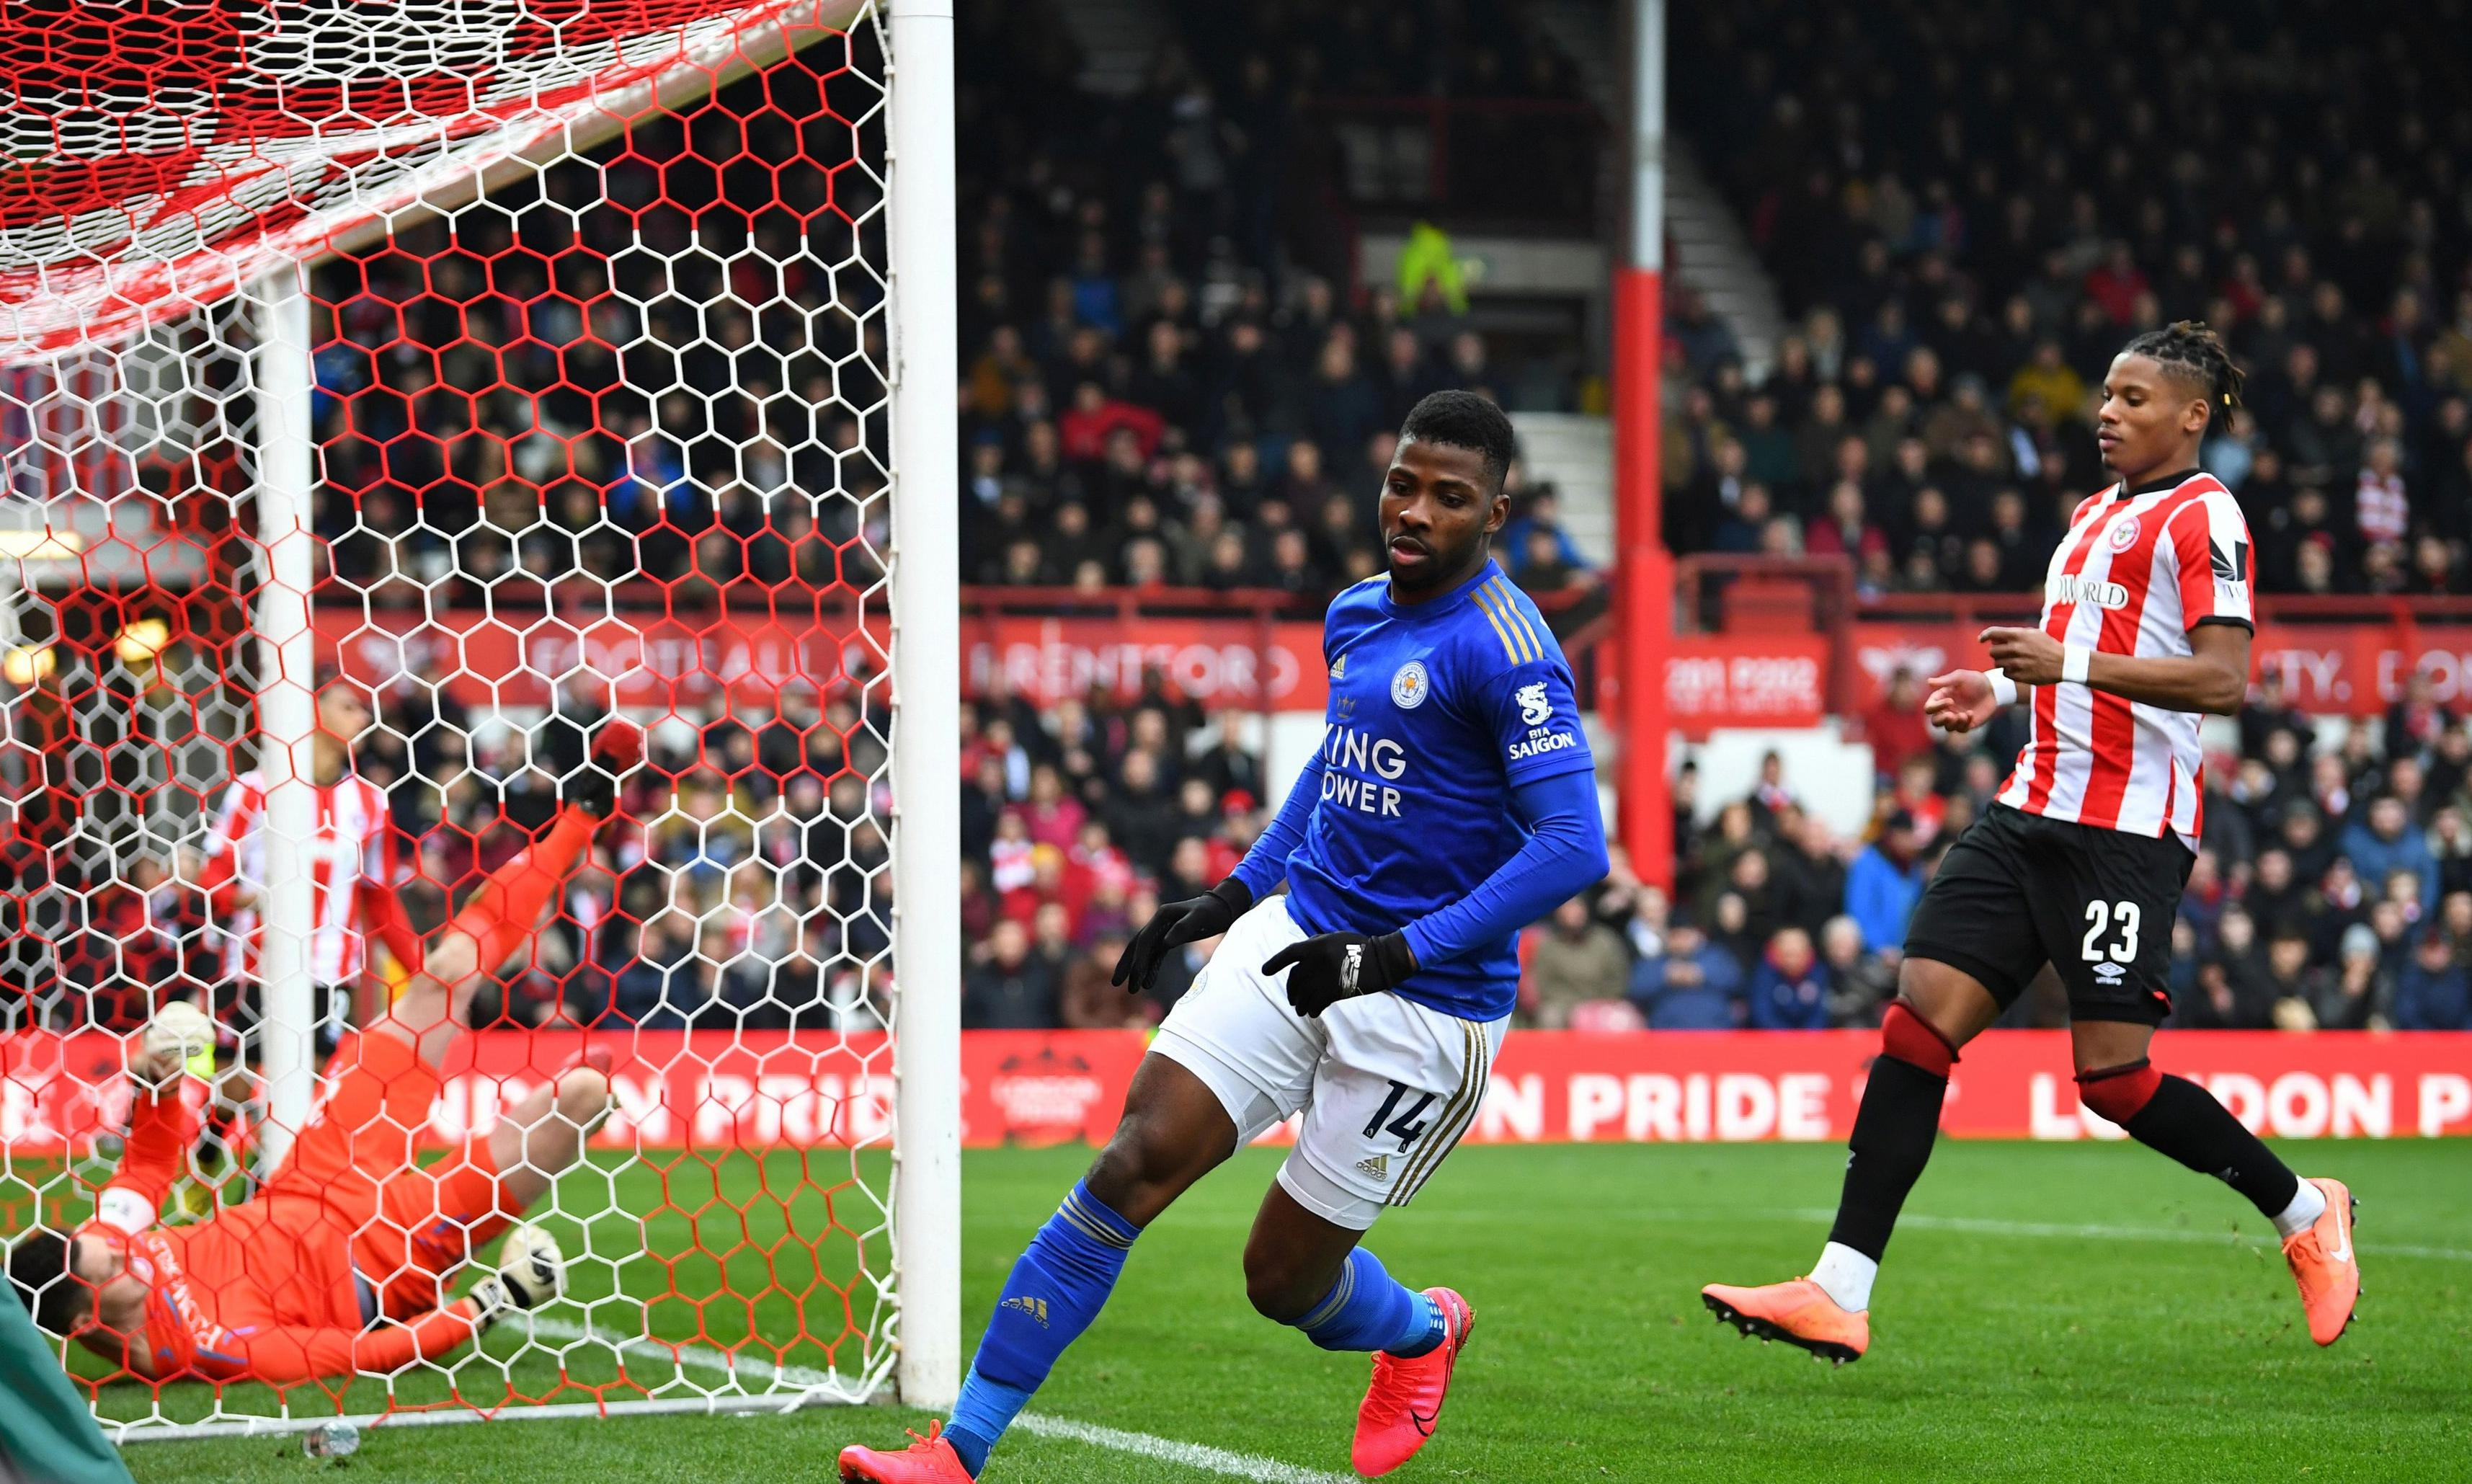 Iheanacho's early strike sees Leicester through FA Cup battle with Brentford